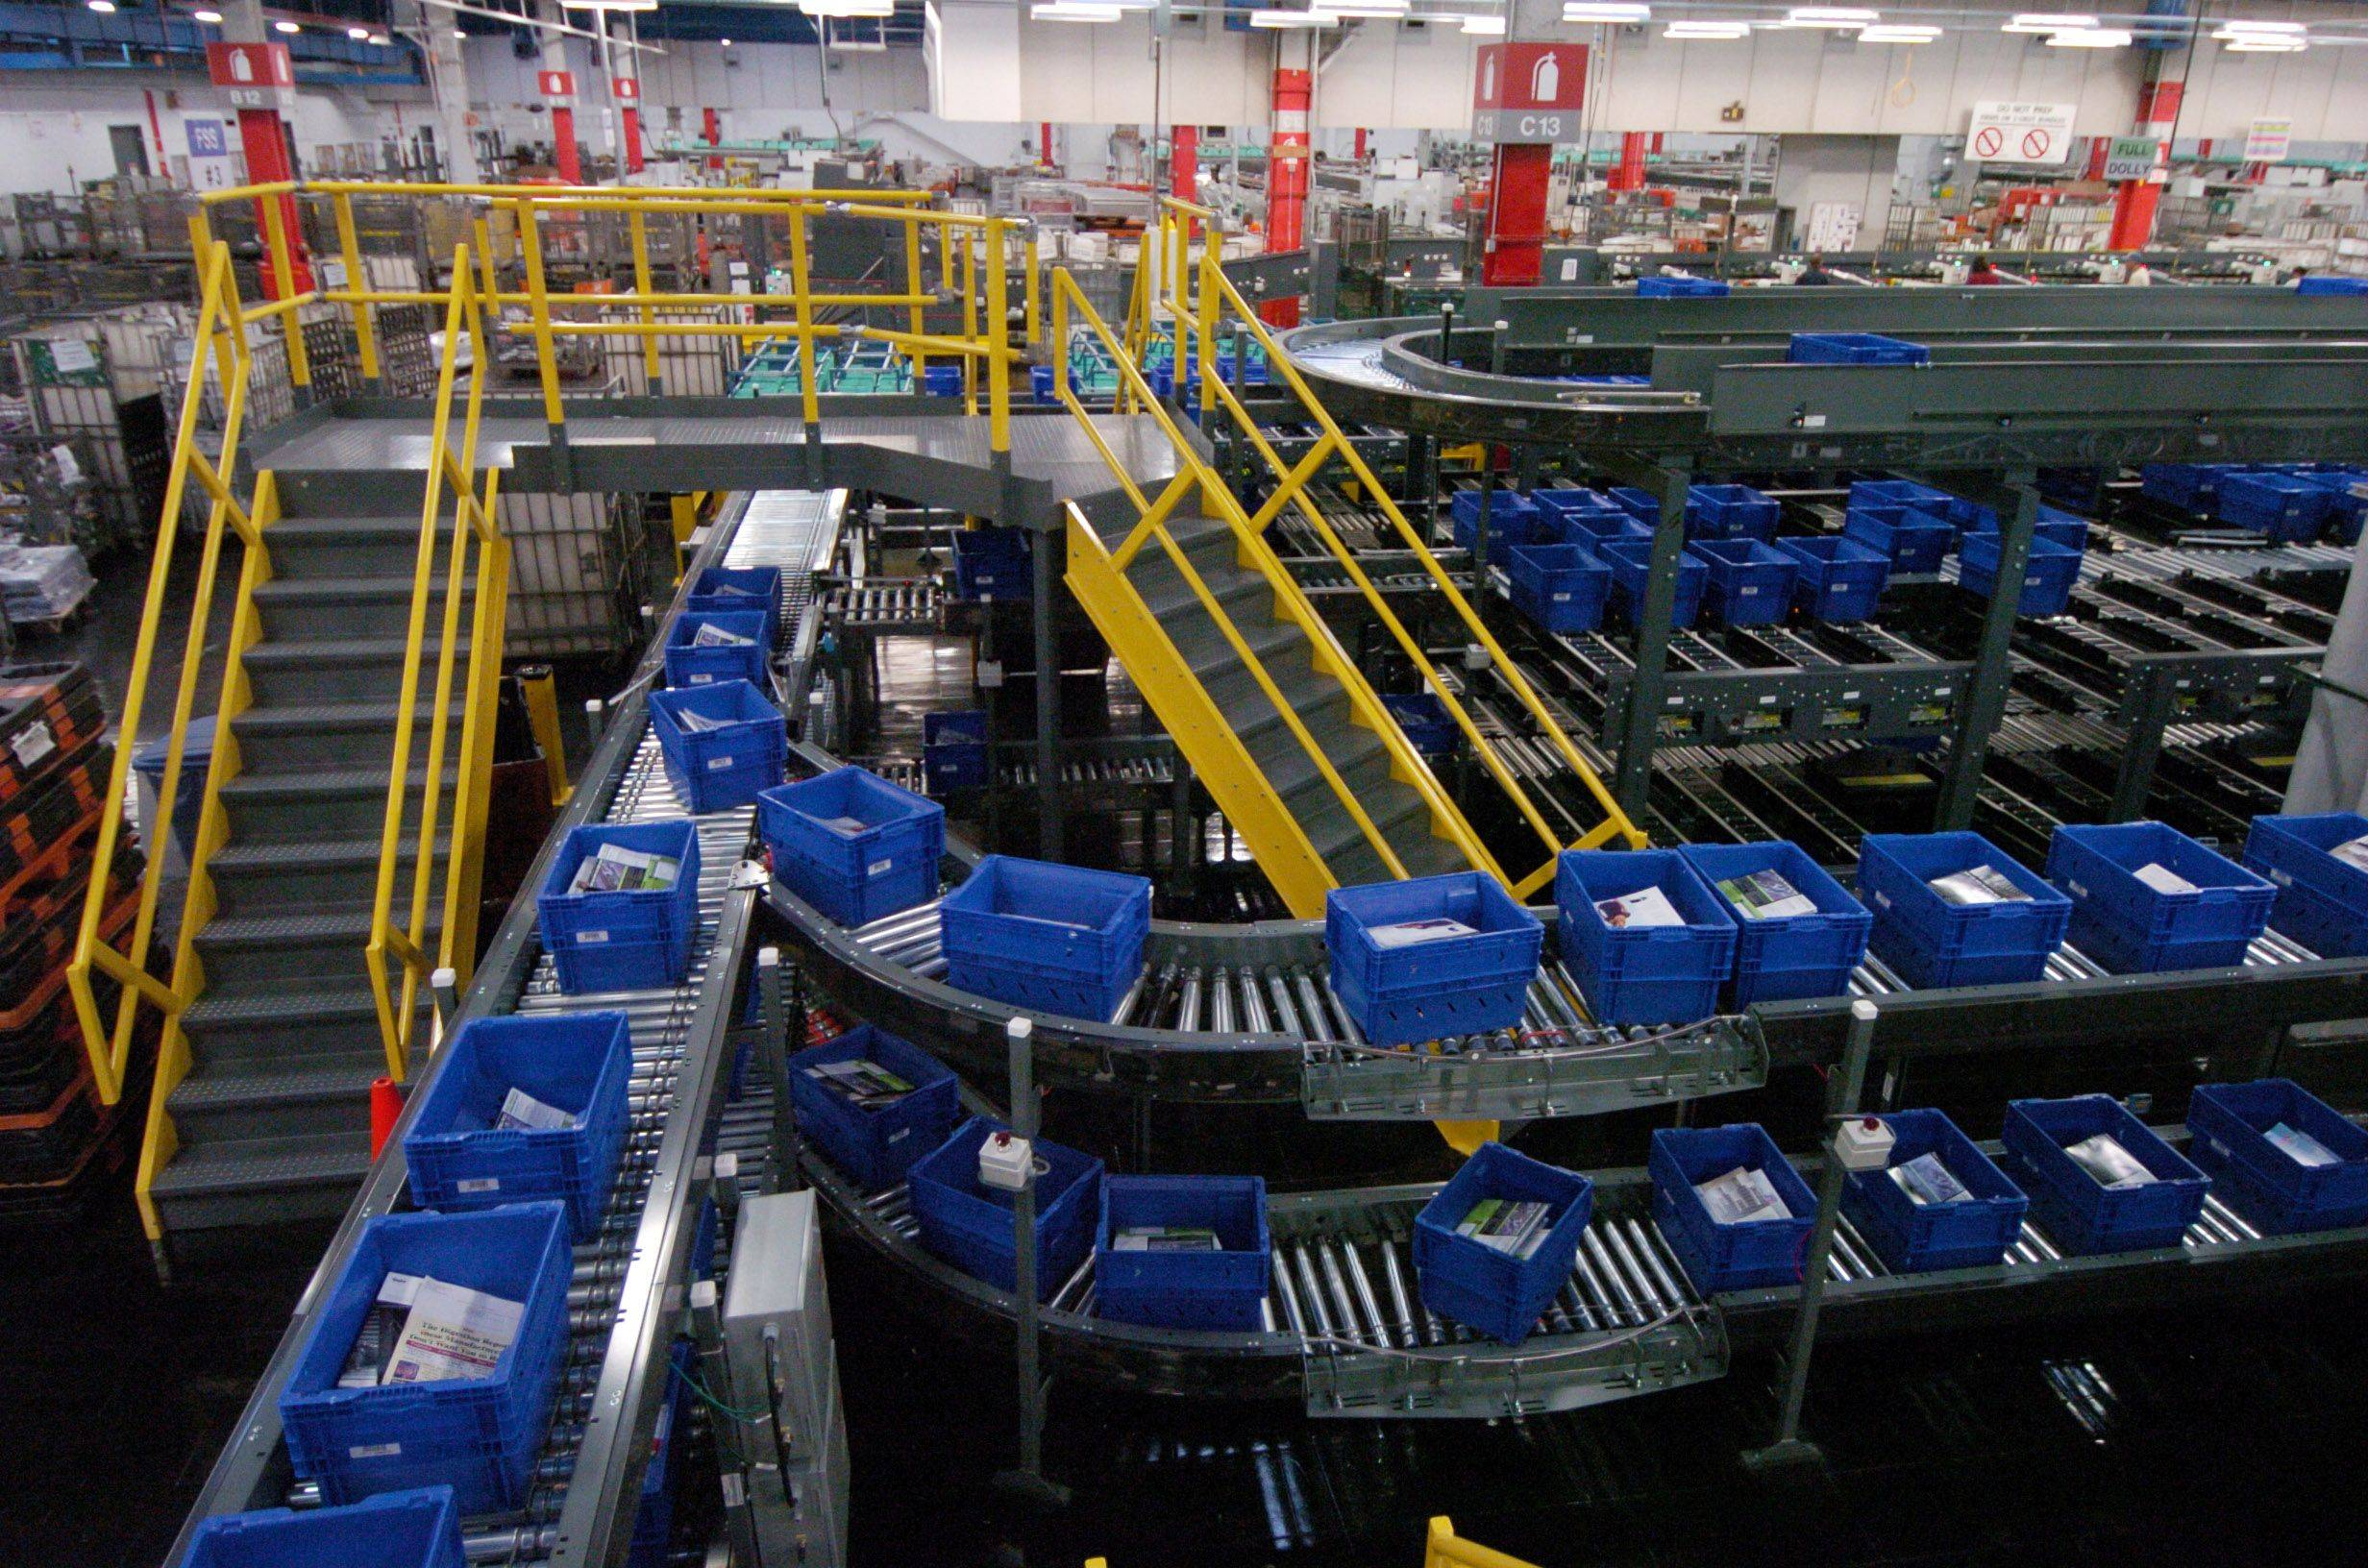 A new flat sequencing system machine processes large envelopes, magazines and catalogs at the U.S. Postal Service's Palatine Processing and Distribution center on Northwest Highway.